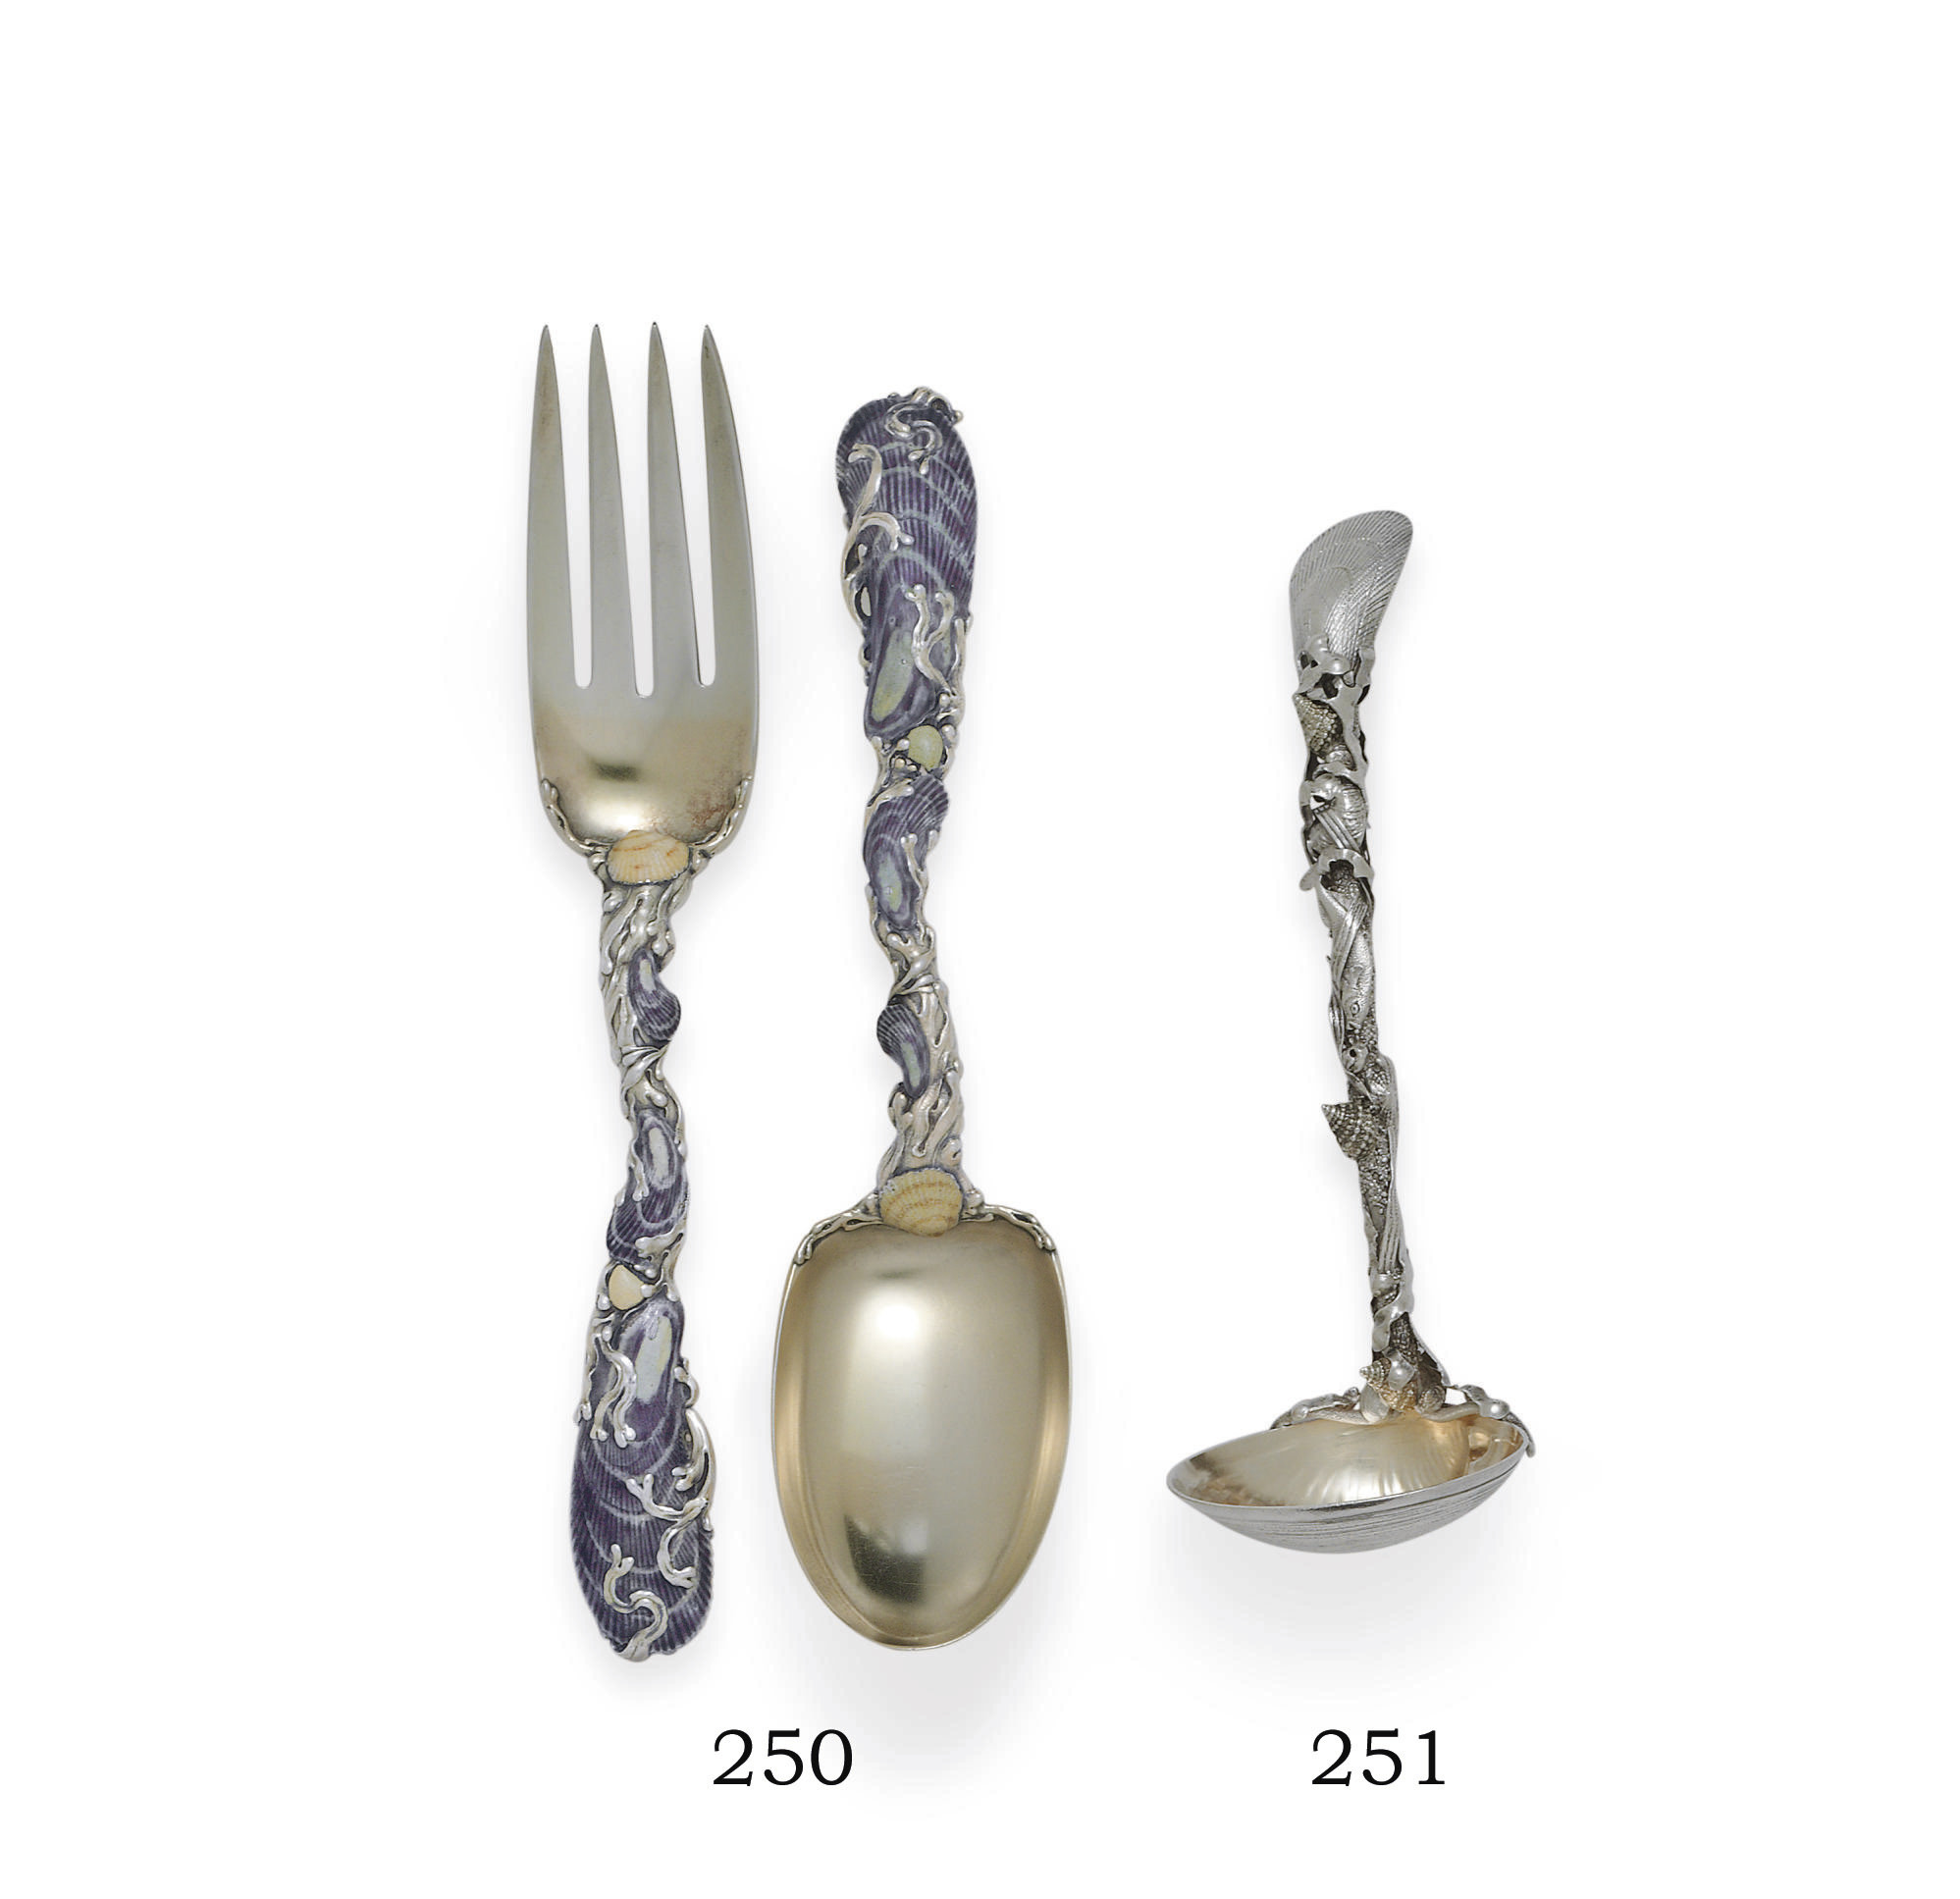 AN AMERICAN SILVER-GILT AND ENAMEL SERVING FORK AND SPOON